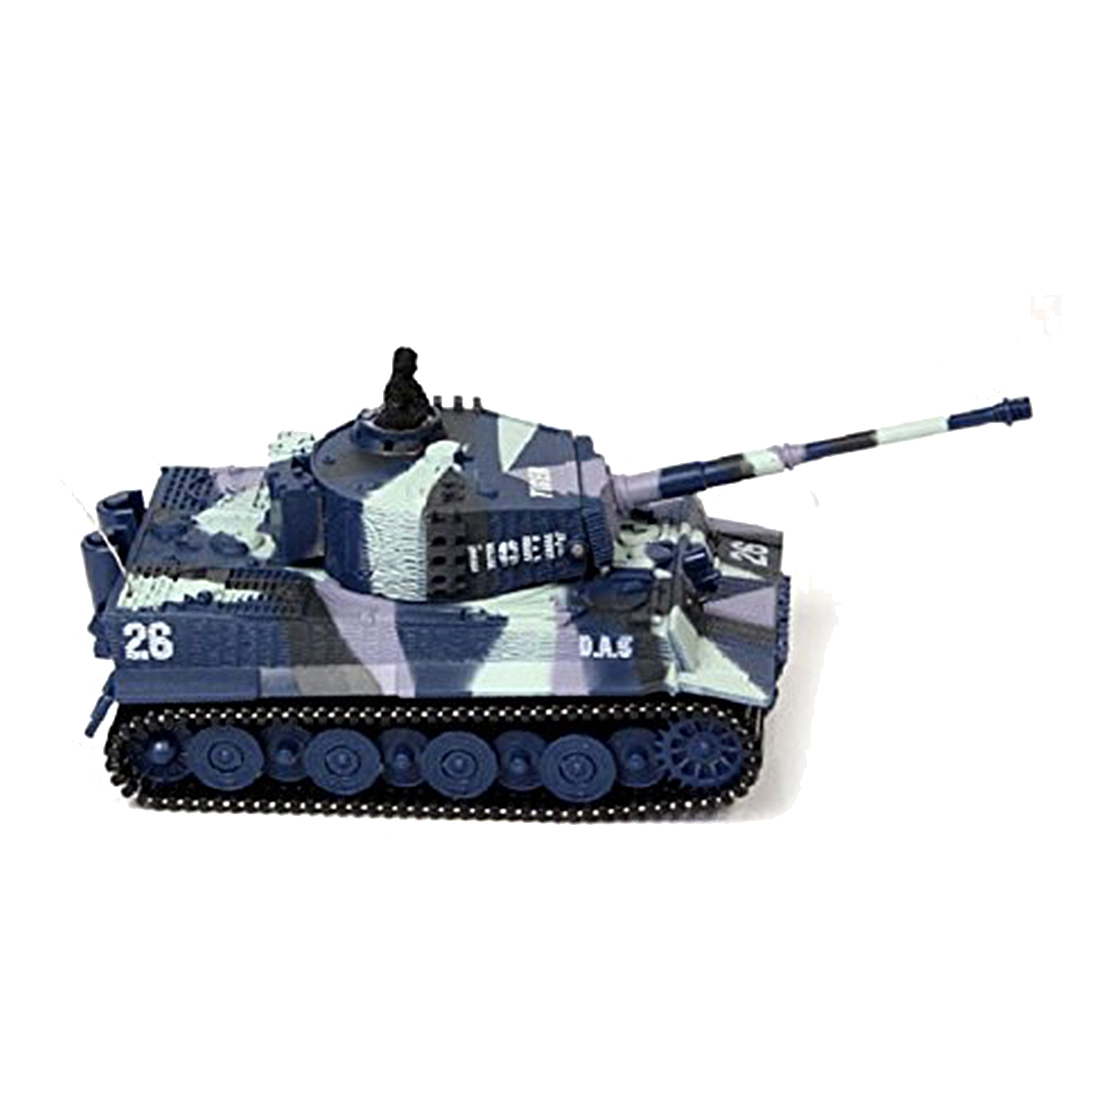 New Mini 1:72 49MHz R/C Radio Remote Control Tiger Tank 20M Kids Toy Gift Army 4 Colors